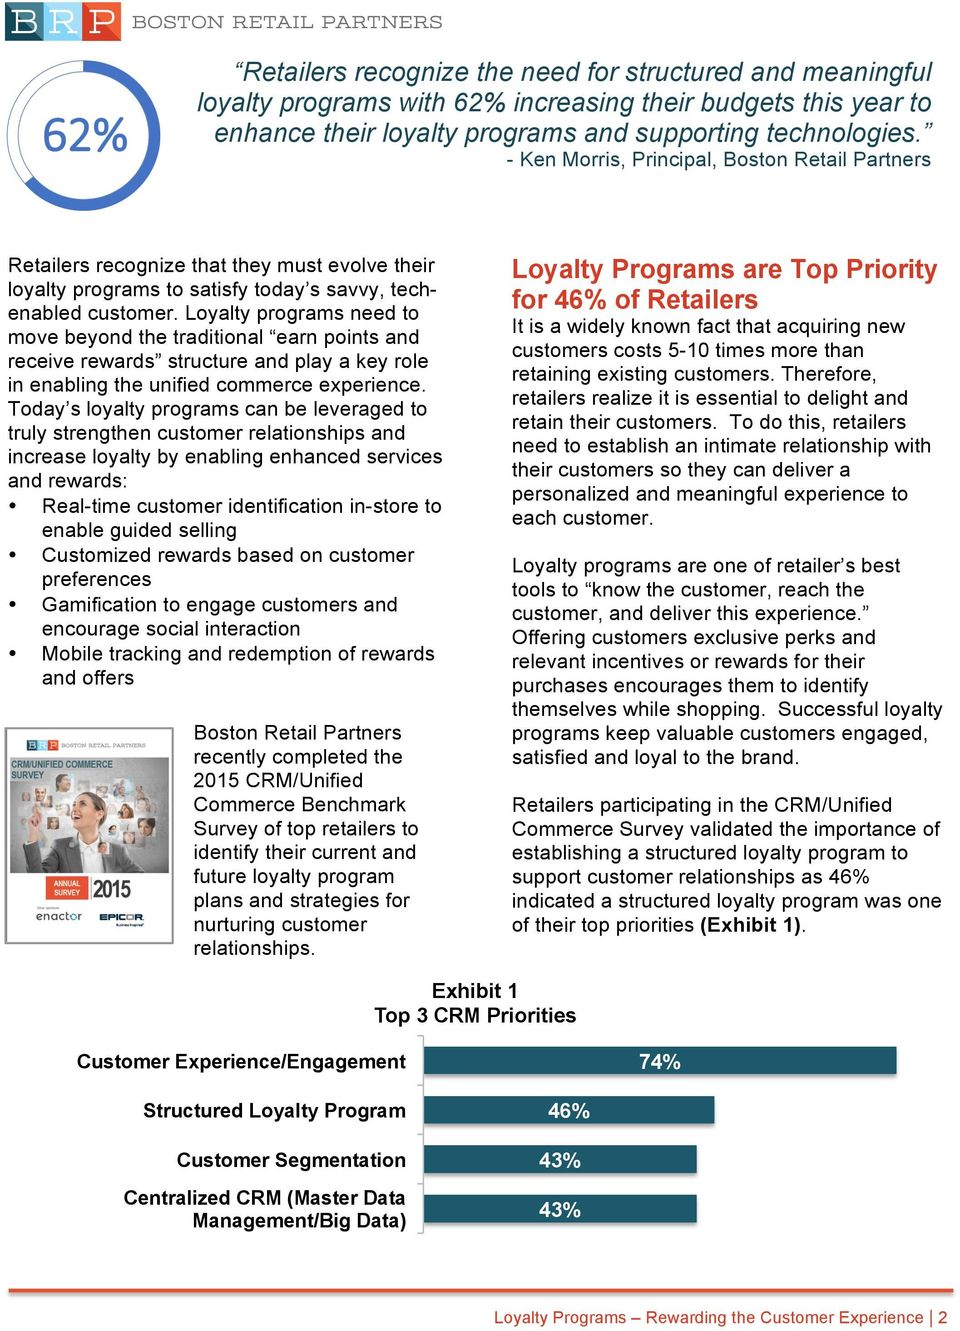 Loyalty programs need to move beyond the traditional earn points and receive rewards structure and play a key role in enabling the unified commerce experience.